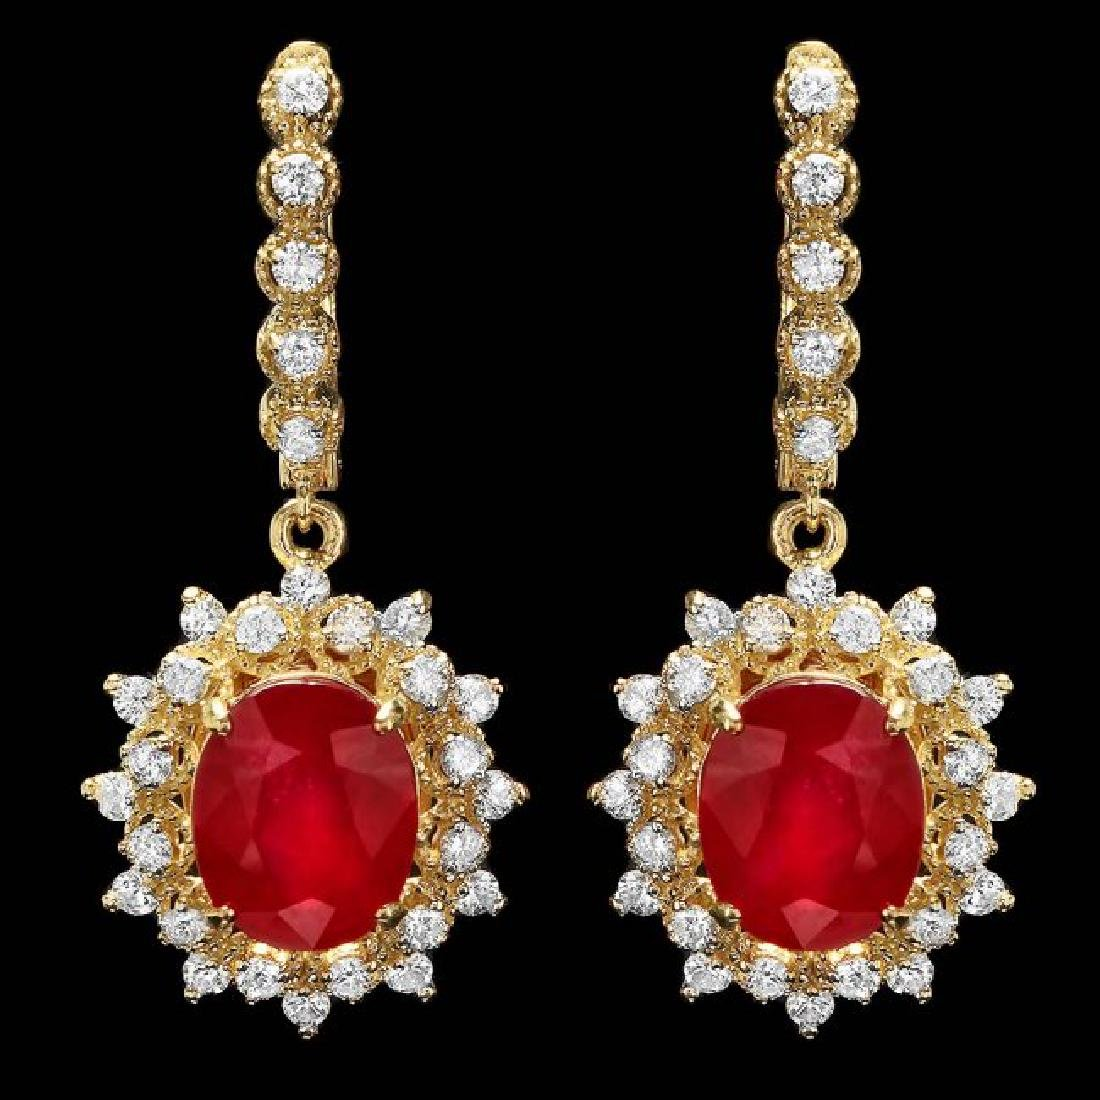 14k Gold 10.00ct Ruby 1.80ct Diamond Earrings